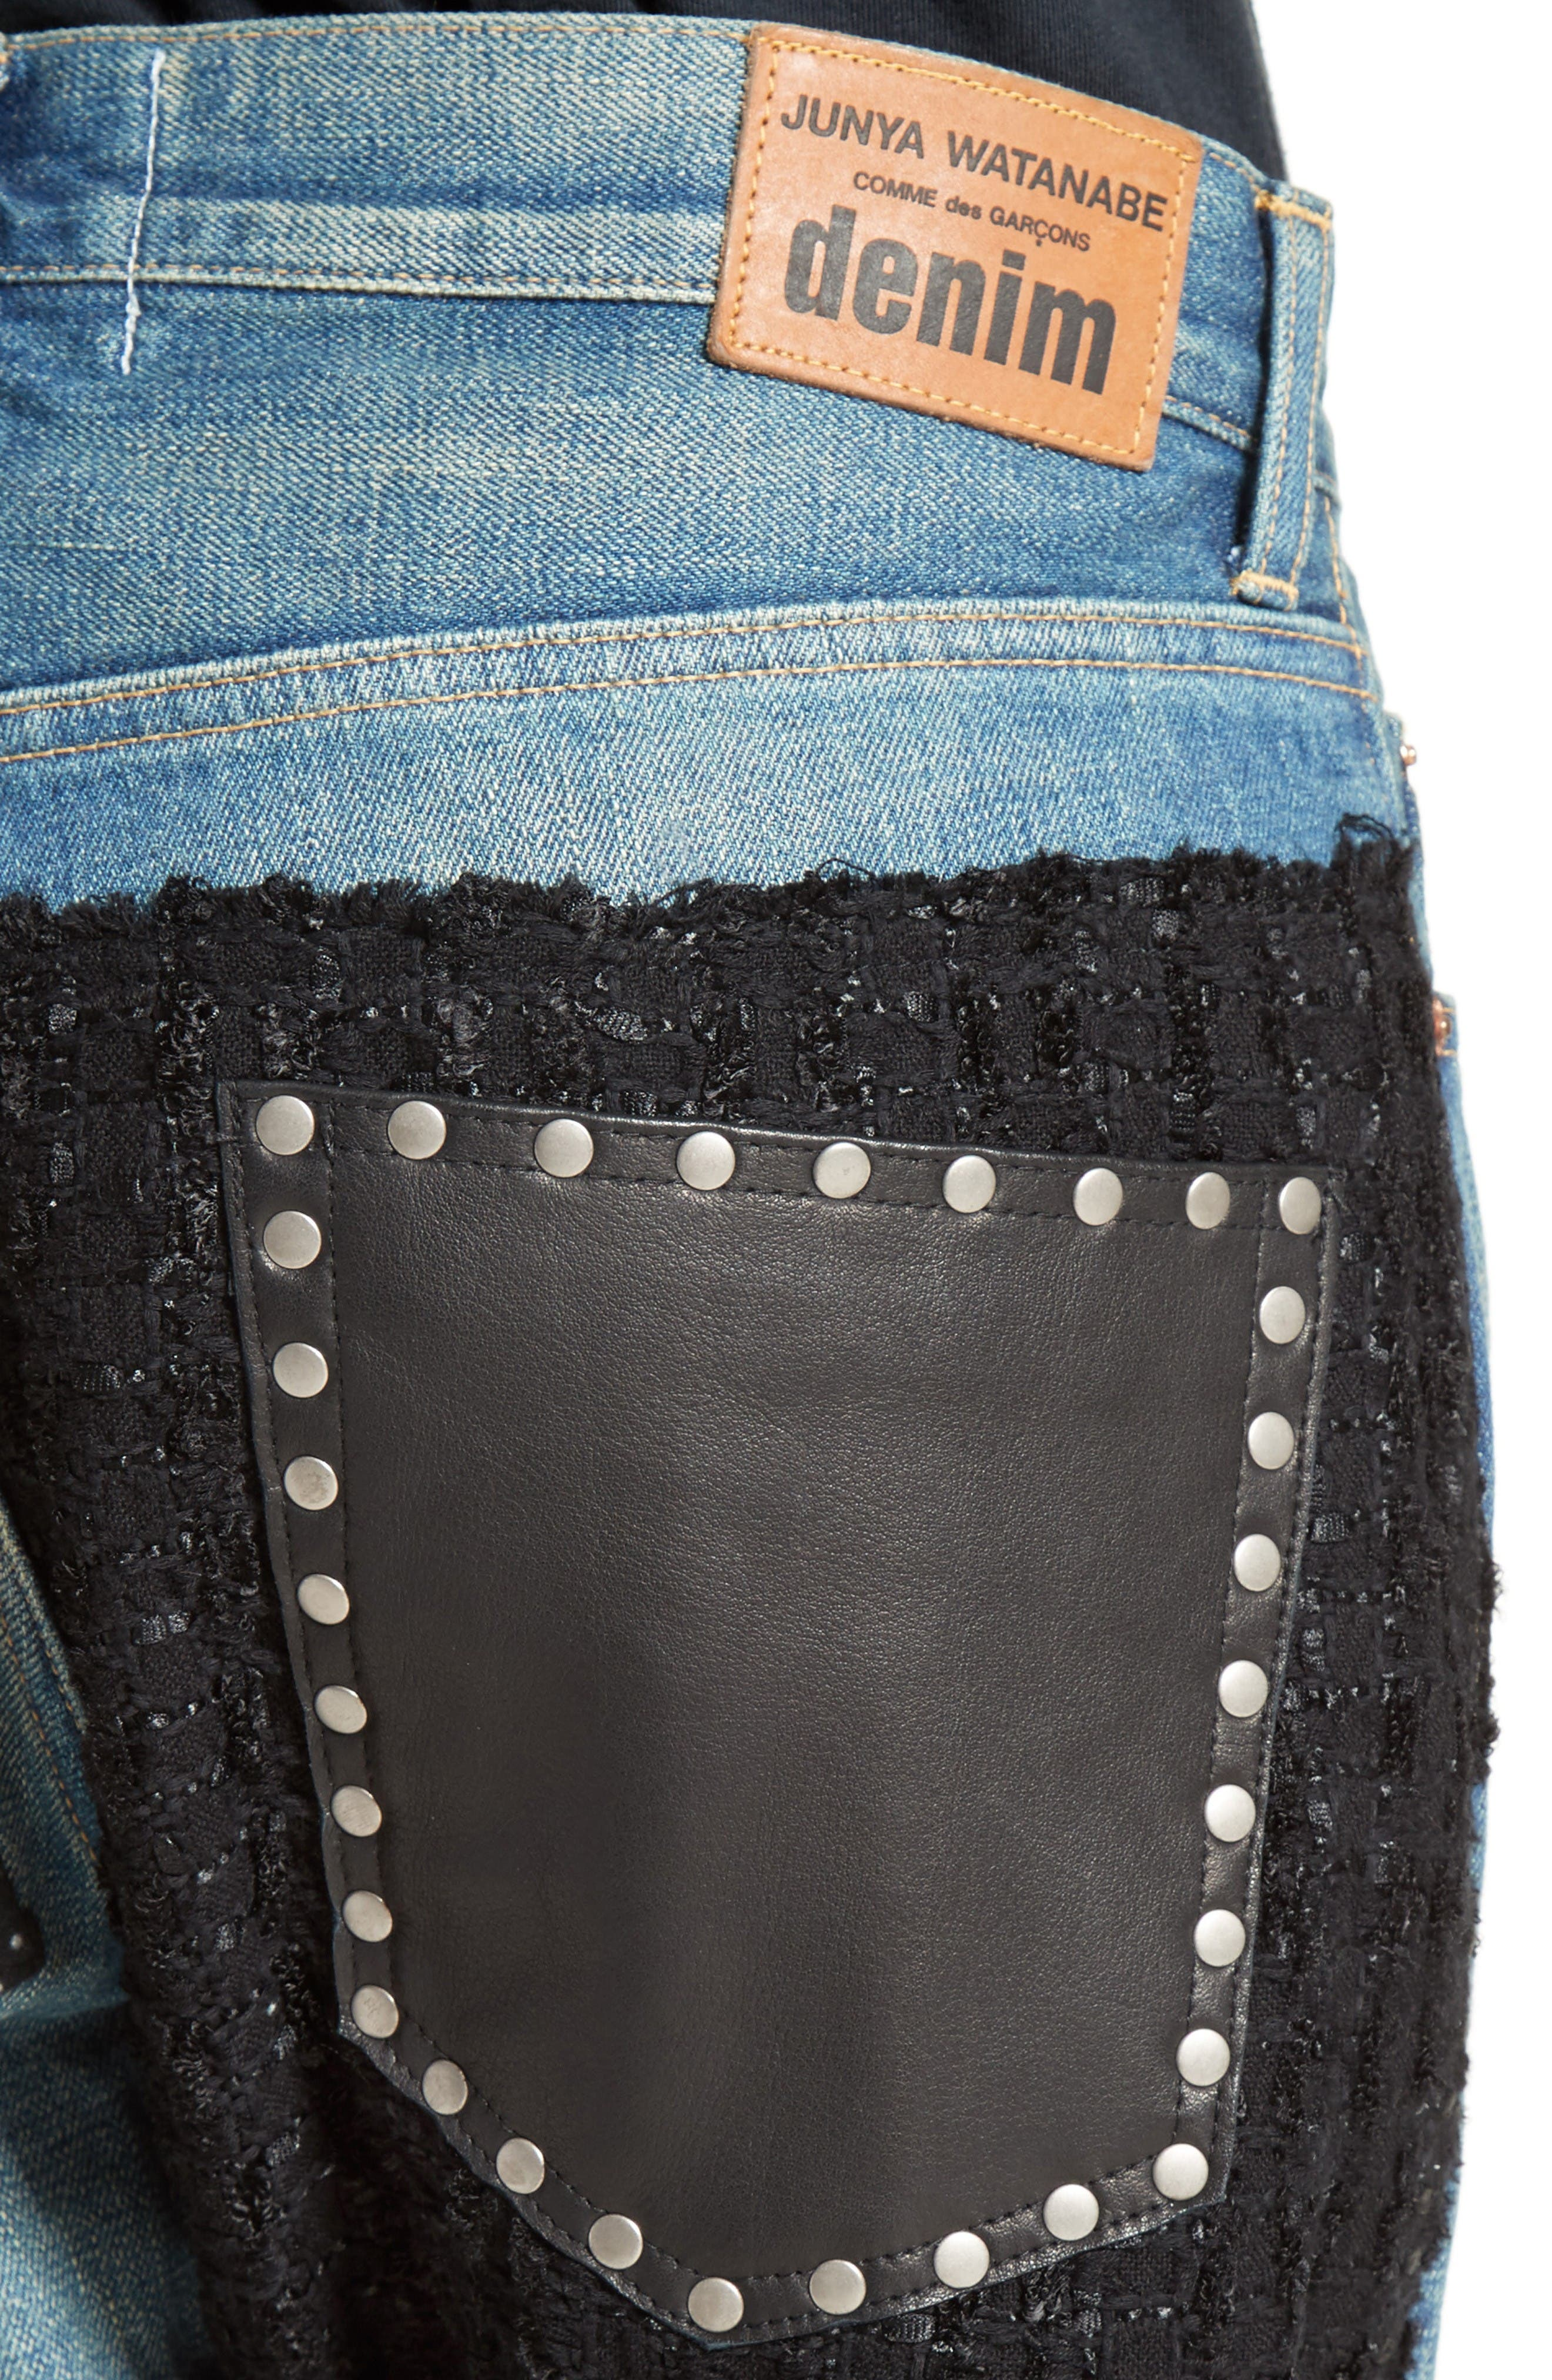 Patchwork Boyfriend Jeans,                             Alternate thumbnail 6, color,                             Indigo Black